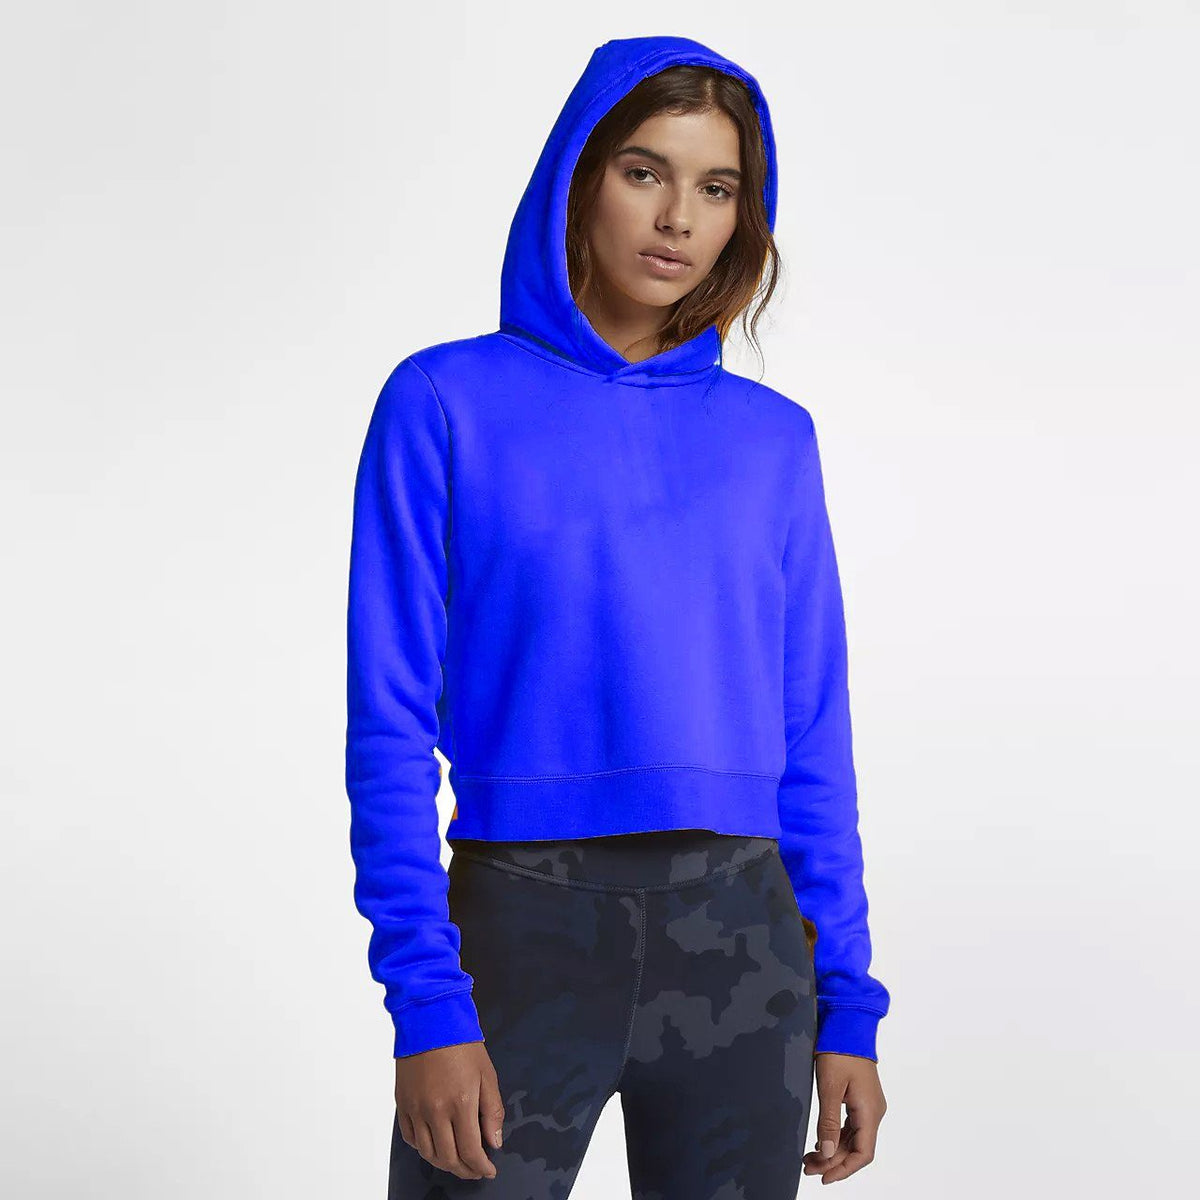 Tally Weijl Women's Minor Fault Fleece Cropped Hoodie Minor Fault SRK Royal Blue 2XS